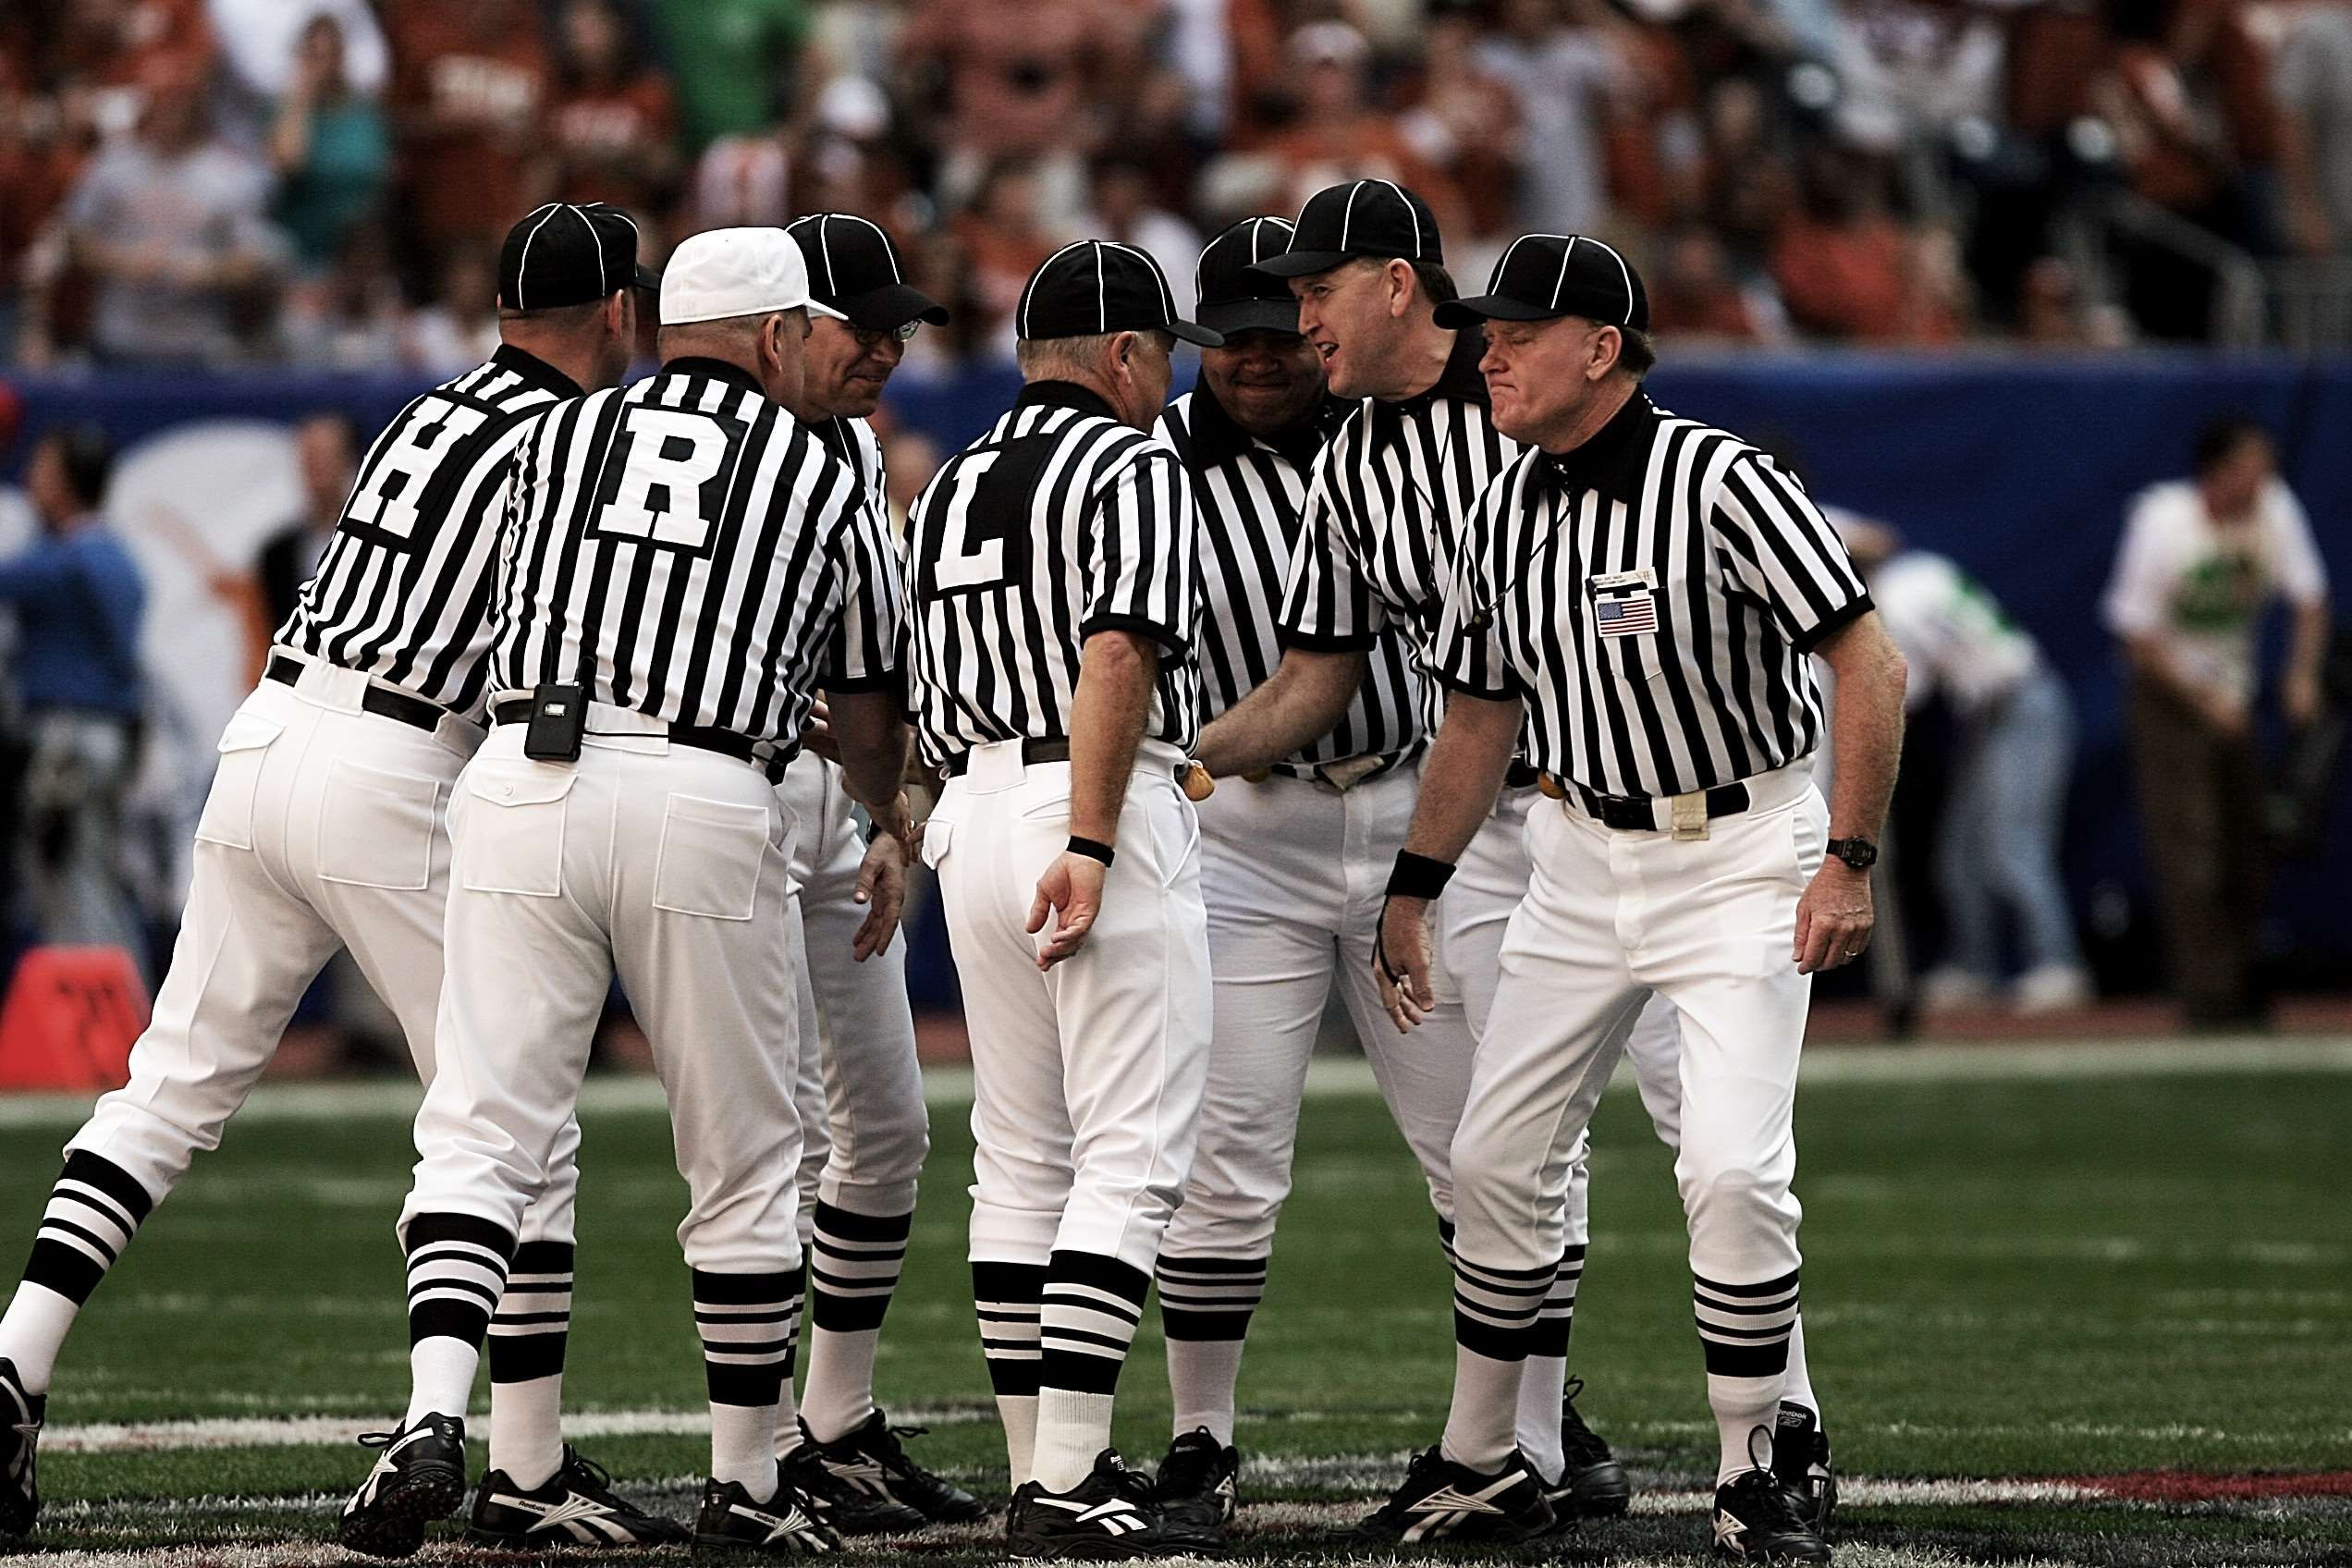 conference game group men people referees sports